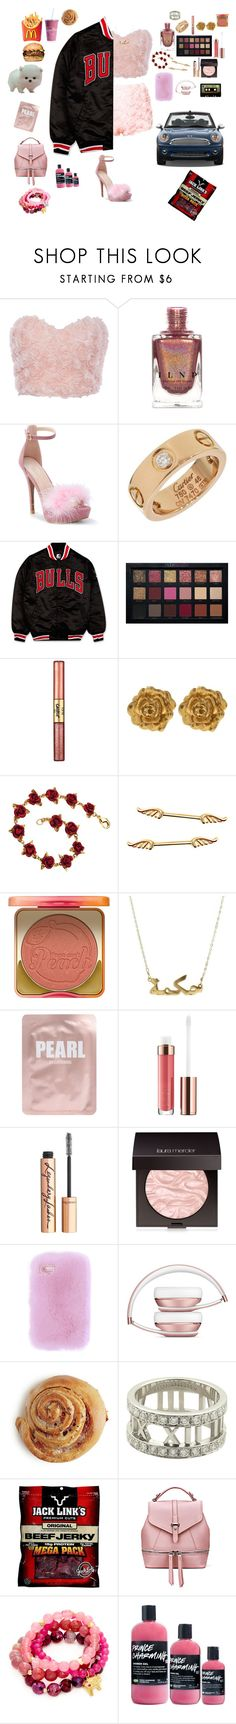 """""""Untitled #397"""" by liazpanda ❤ liked on Polyvore featuring Cartier, Starter, Huda Beauty, tarte, Liberty, Too Faced Cosmetics, Lapcos, Charlotte Tilbury, Laura Mercier and INDIE HAIR"""